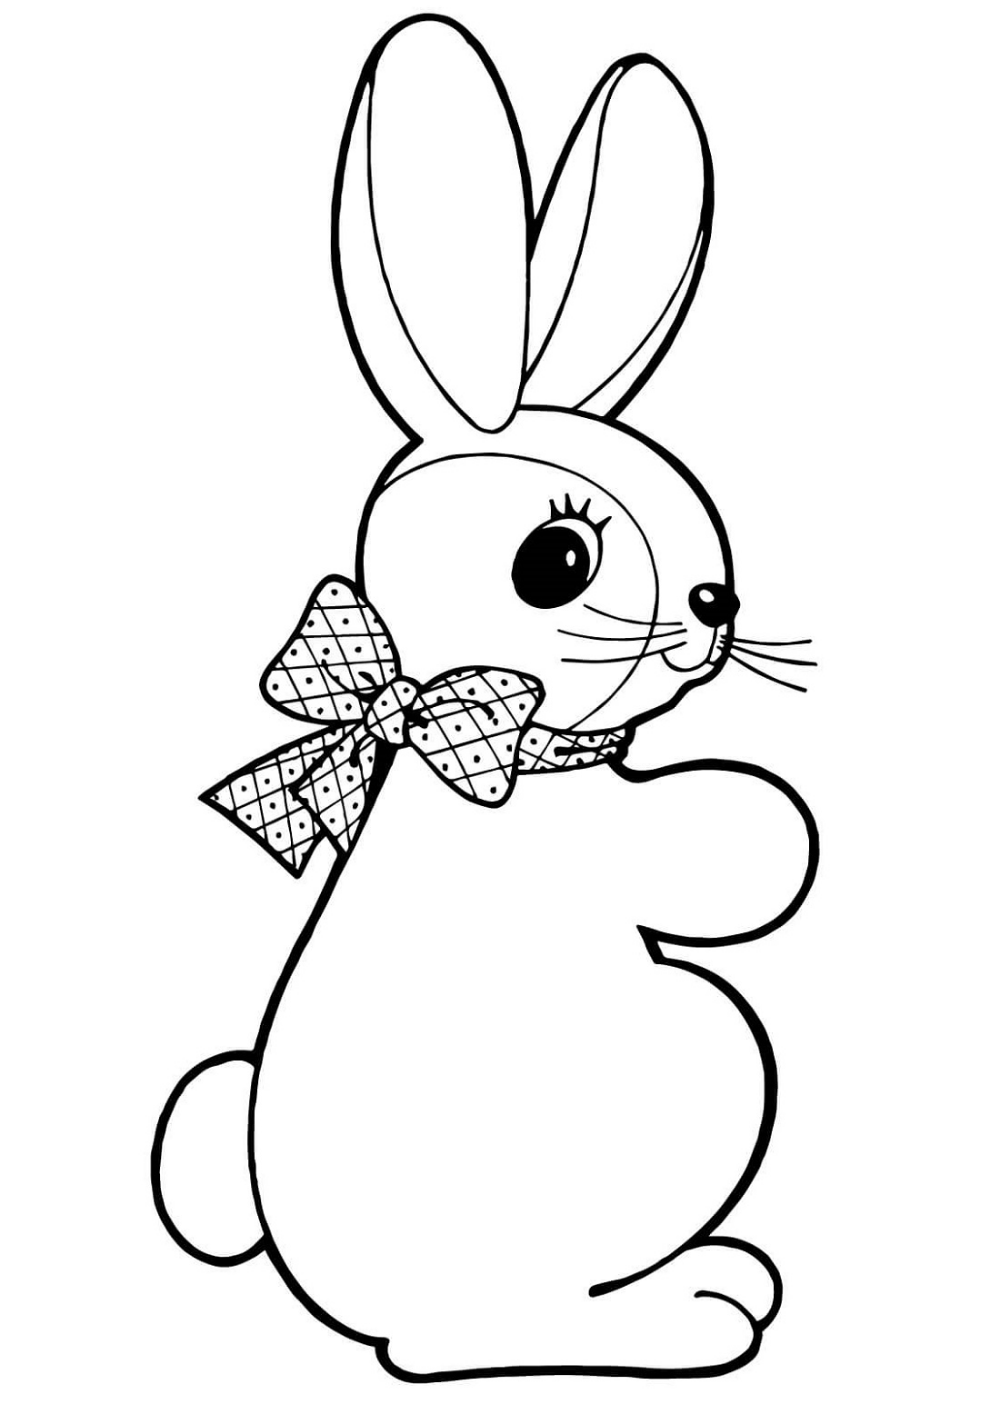 Bunny Coloring Pages | K5 Worksheets | Bunny coloring ...